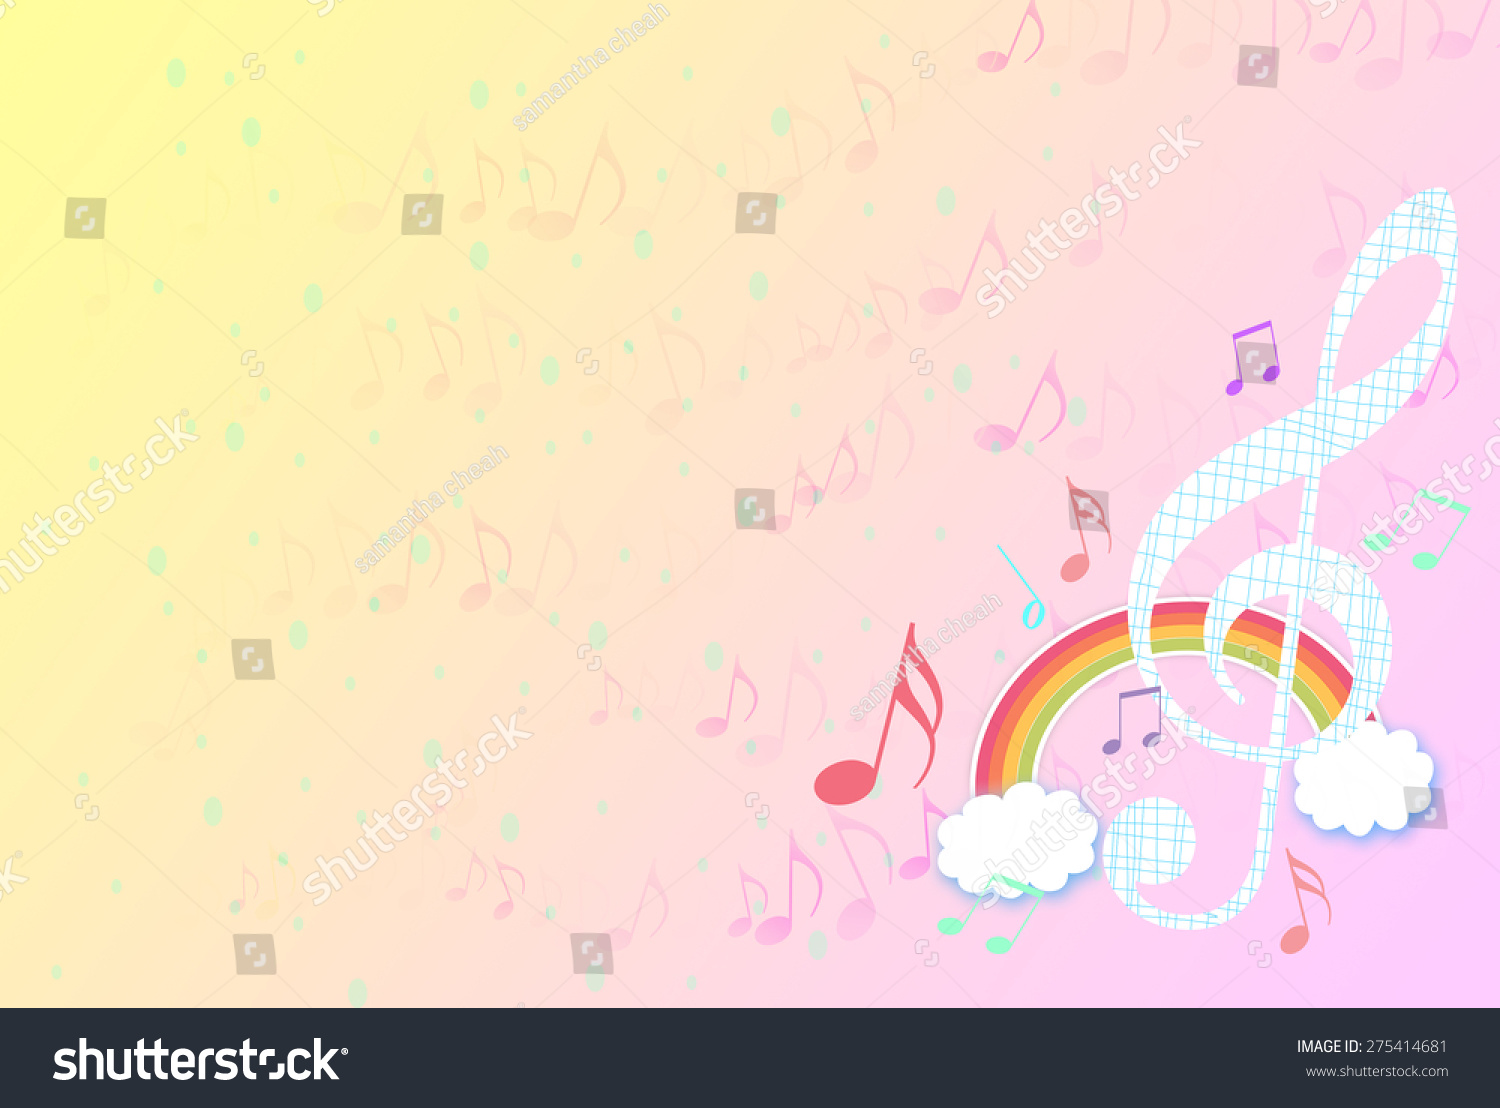 Rainbow Music Background Meaning Colorful Lines And Melody: Music Notes Drawing Colorful Rainbow Over Stock